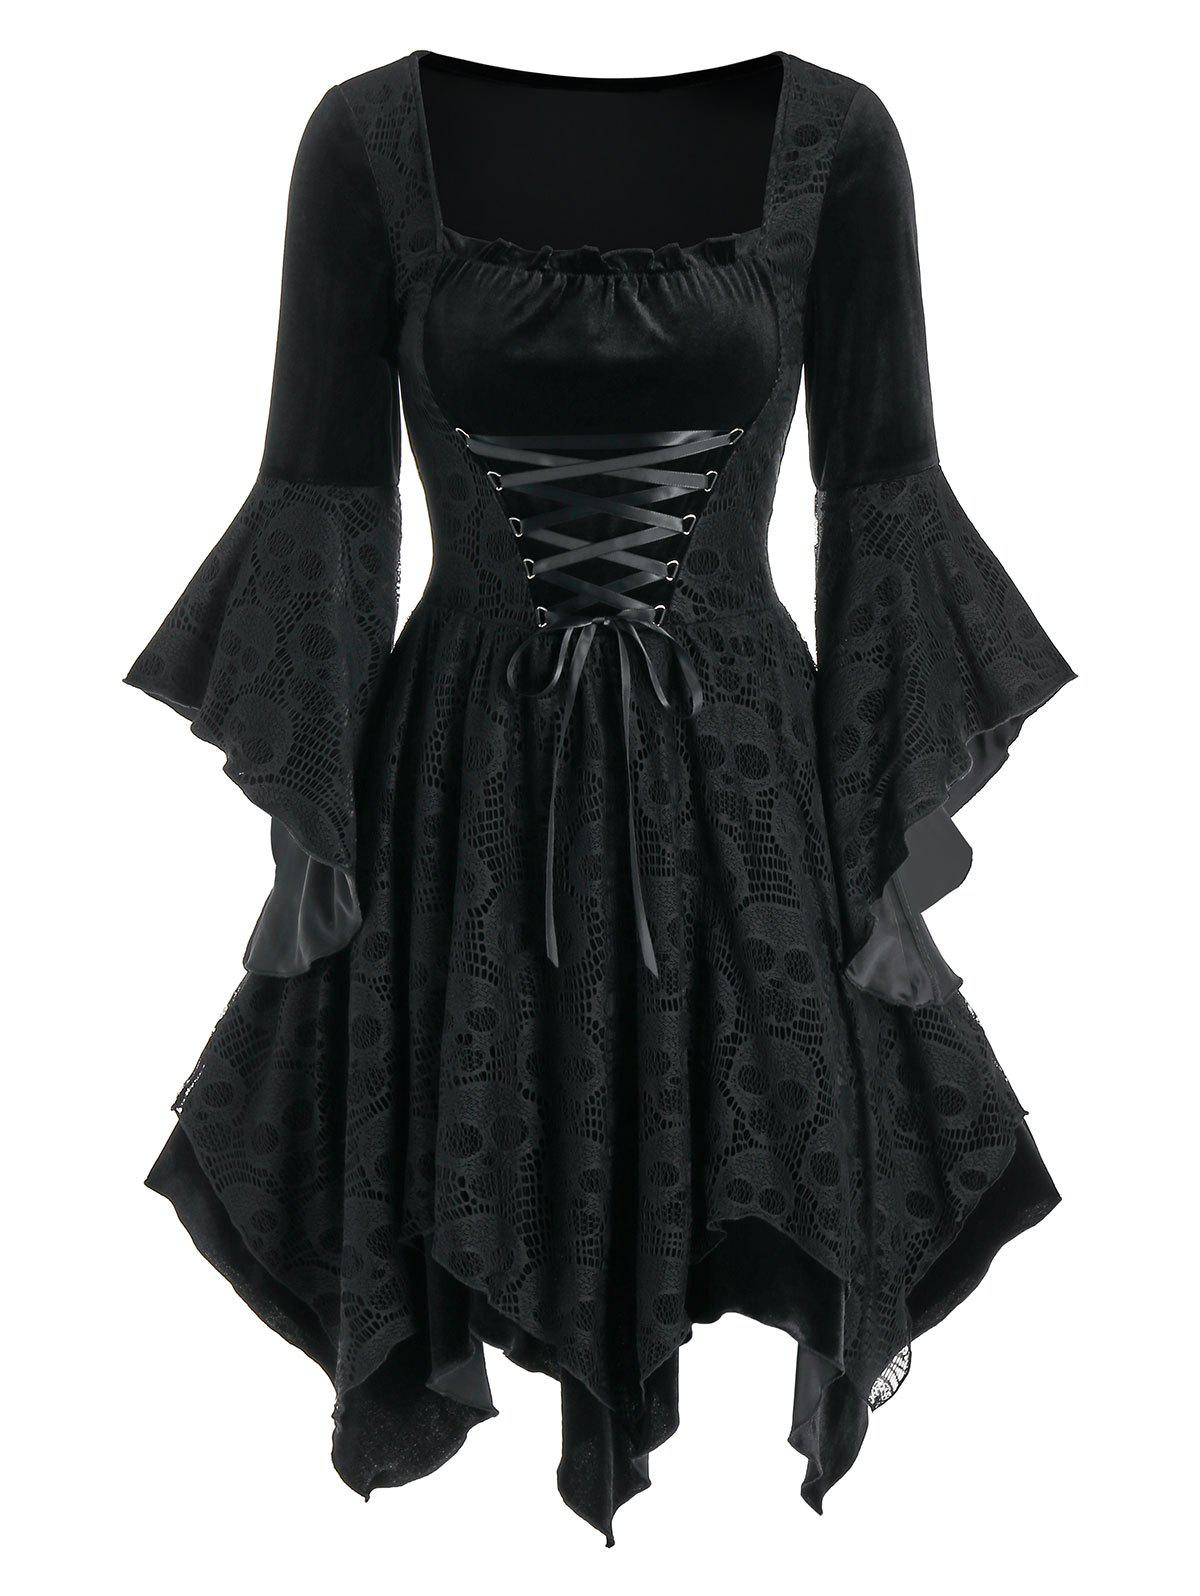 Hot Halloween Skull Lace Insert Lace-up Velvet Handkerchief Dress